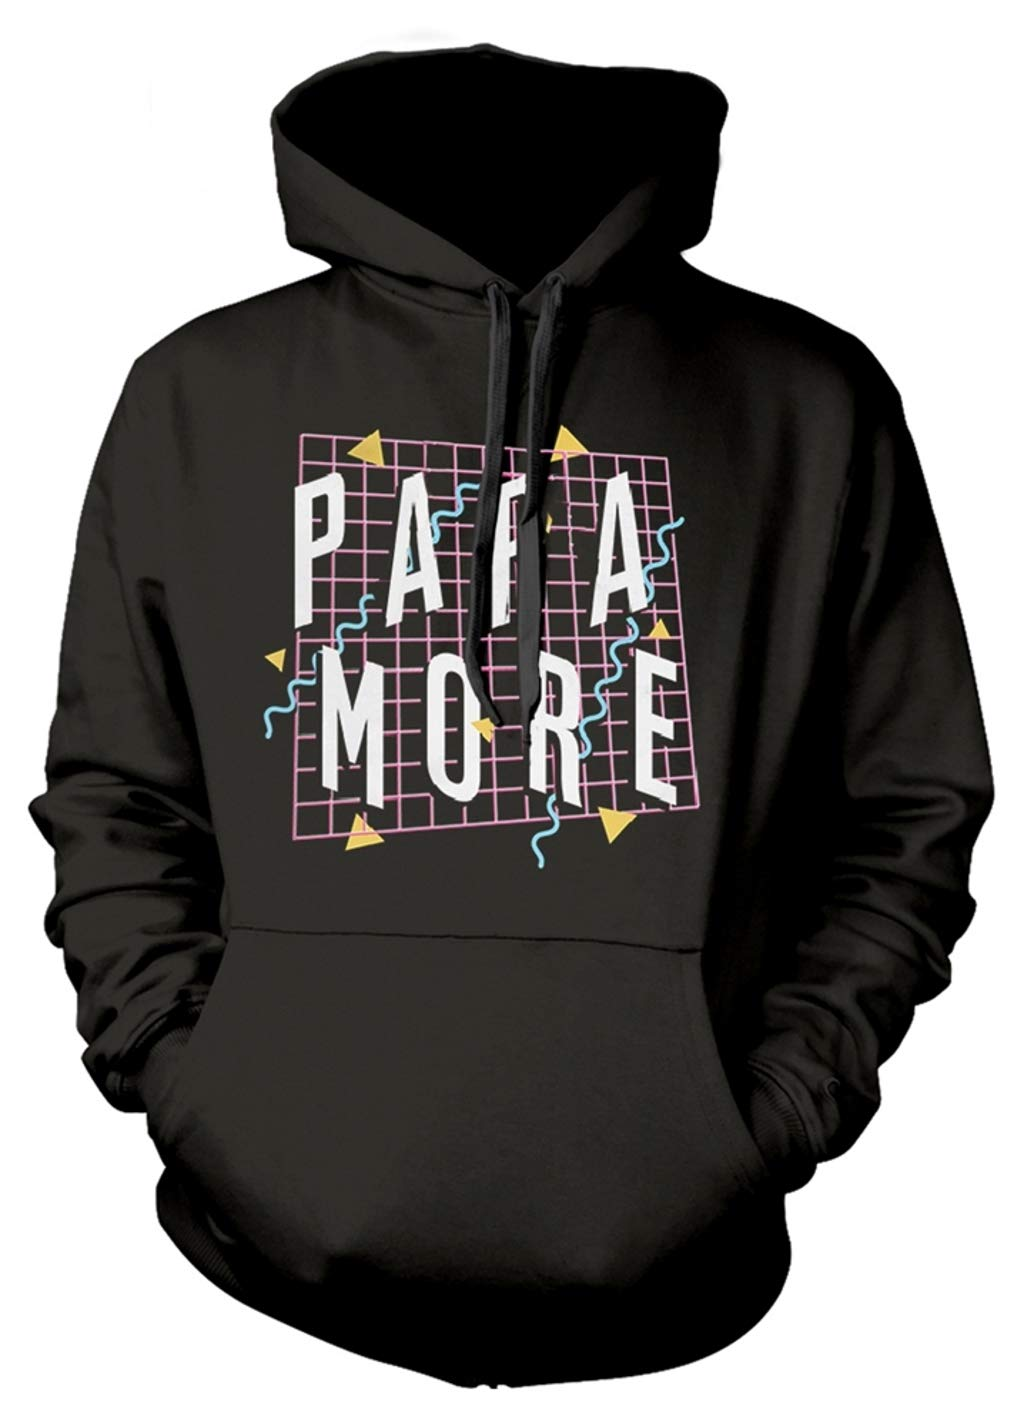 Paramore 'New Grid' Pull Over Hoodie